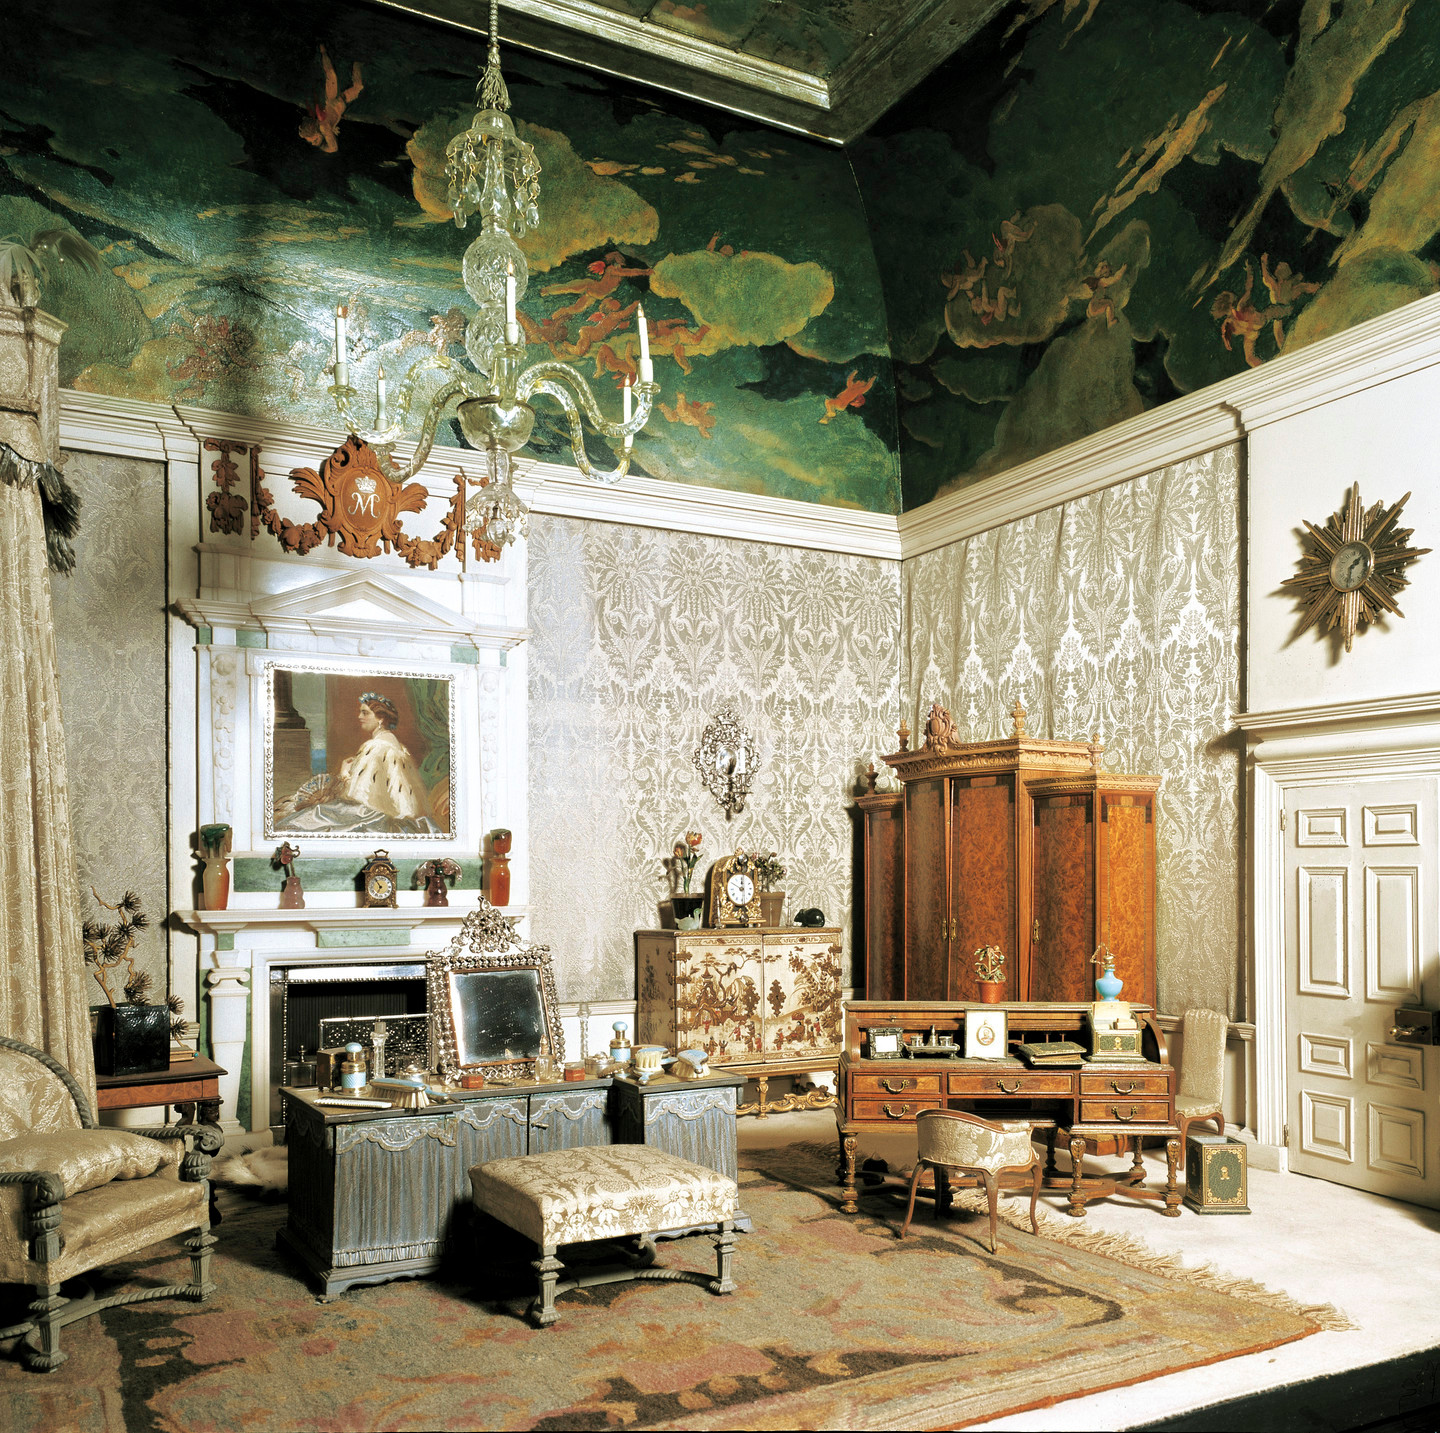 Queen Mary's Dolls' House 1921-24 made by SIR EDWIN LANDSEER LUTYENS (1869-1944). inside view